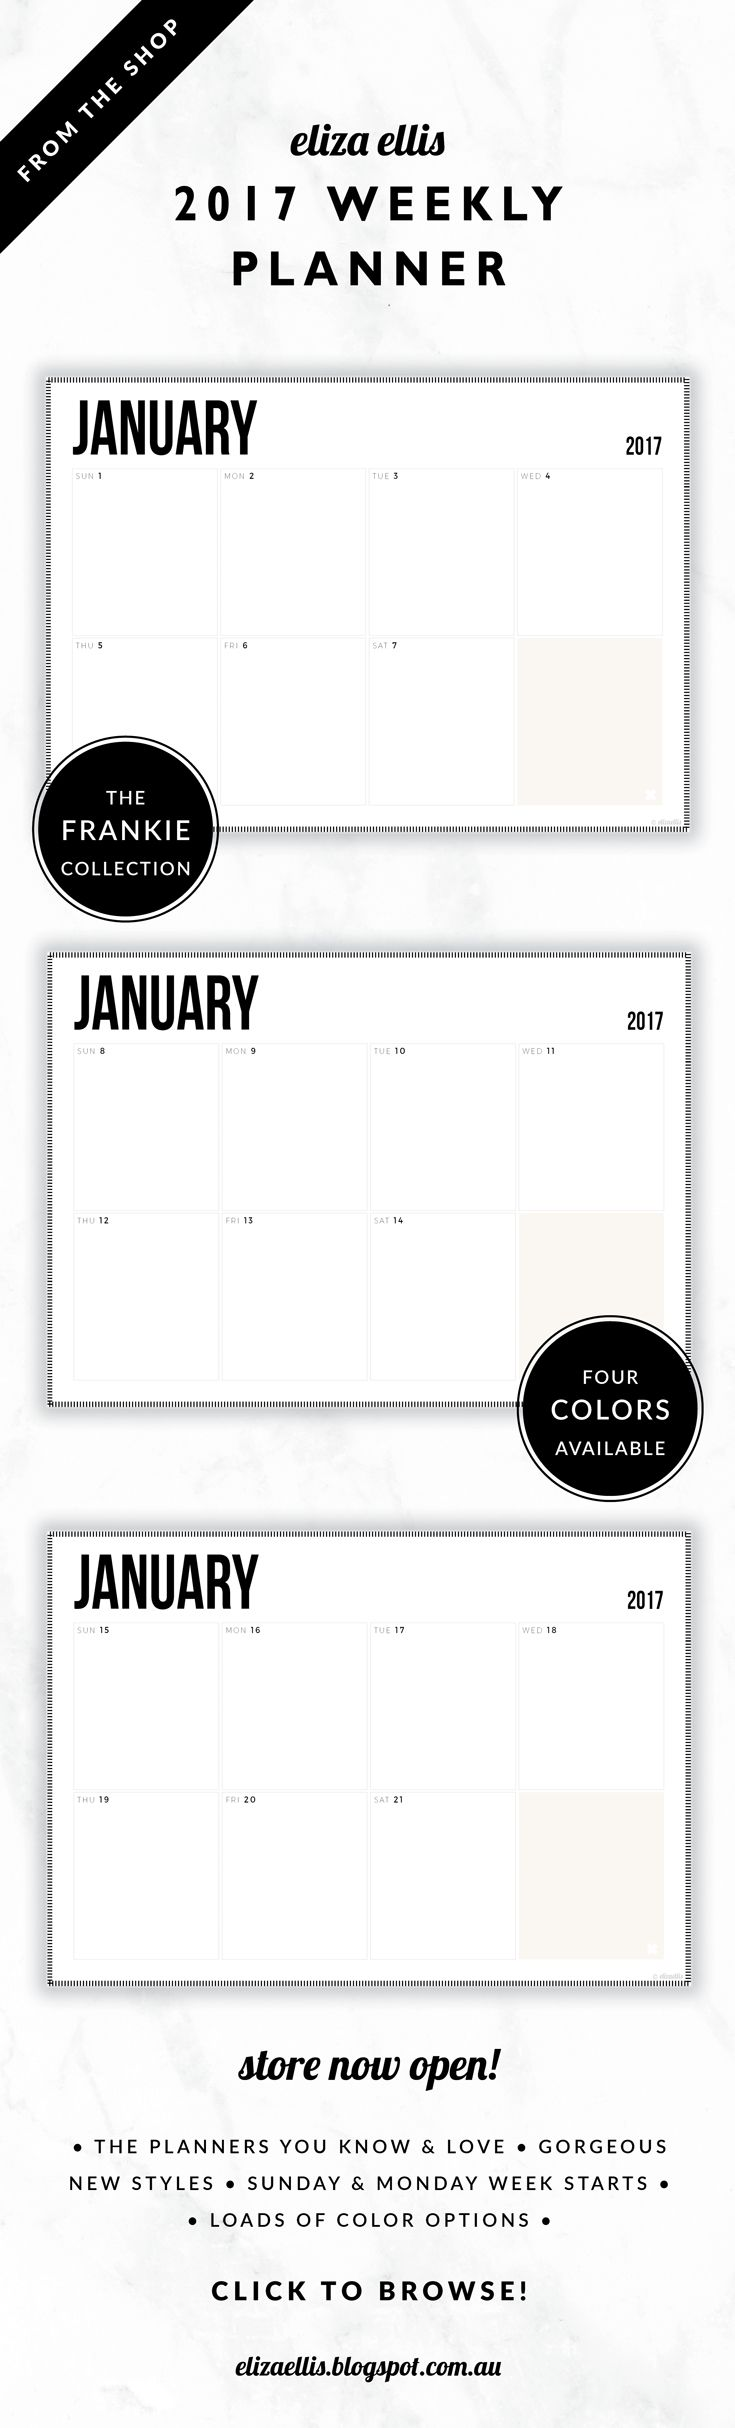 2017 Weekly Planner // The Frankie Collection by Eliza Ellis. Classic, bold design with hash border. Available in 4 colors –  silk, mist, smoke and bone. Monday and Sunday week starts included. Documents print to A4 or A5.